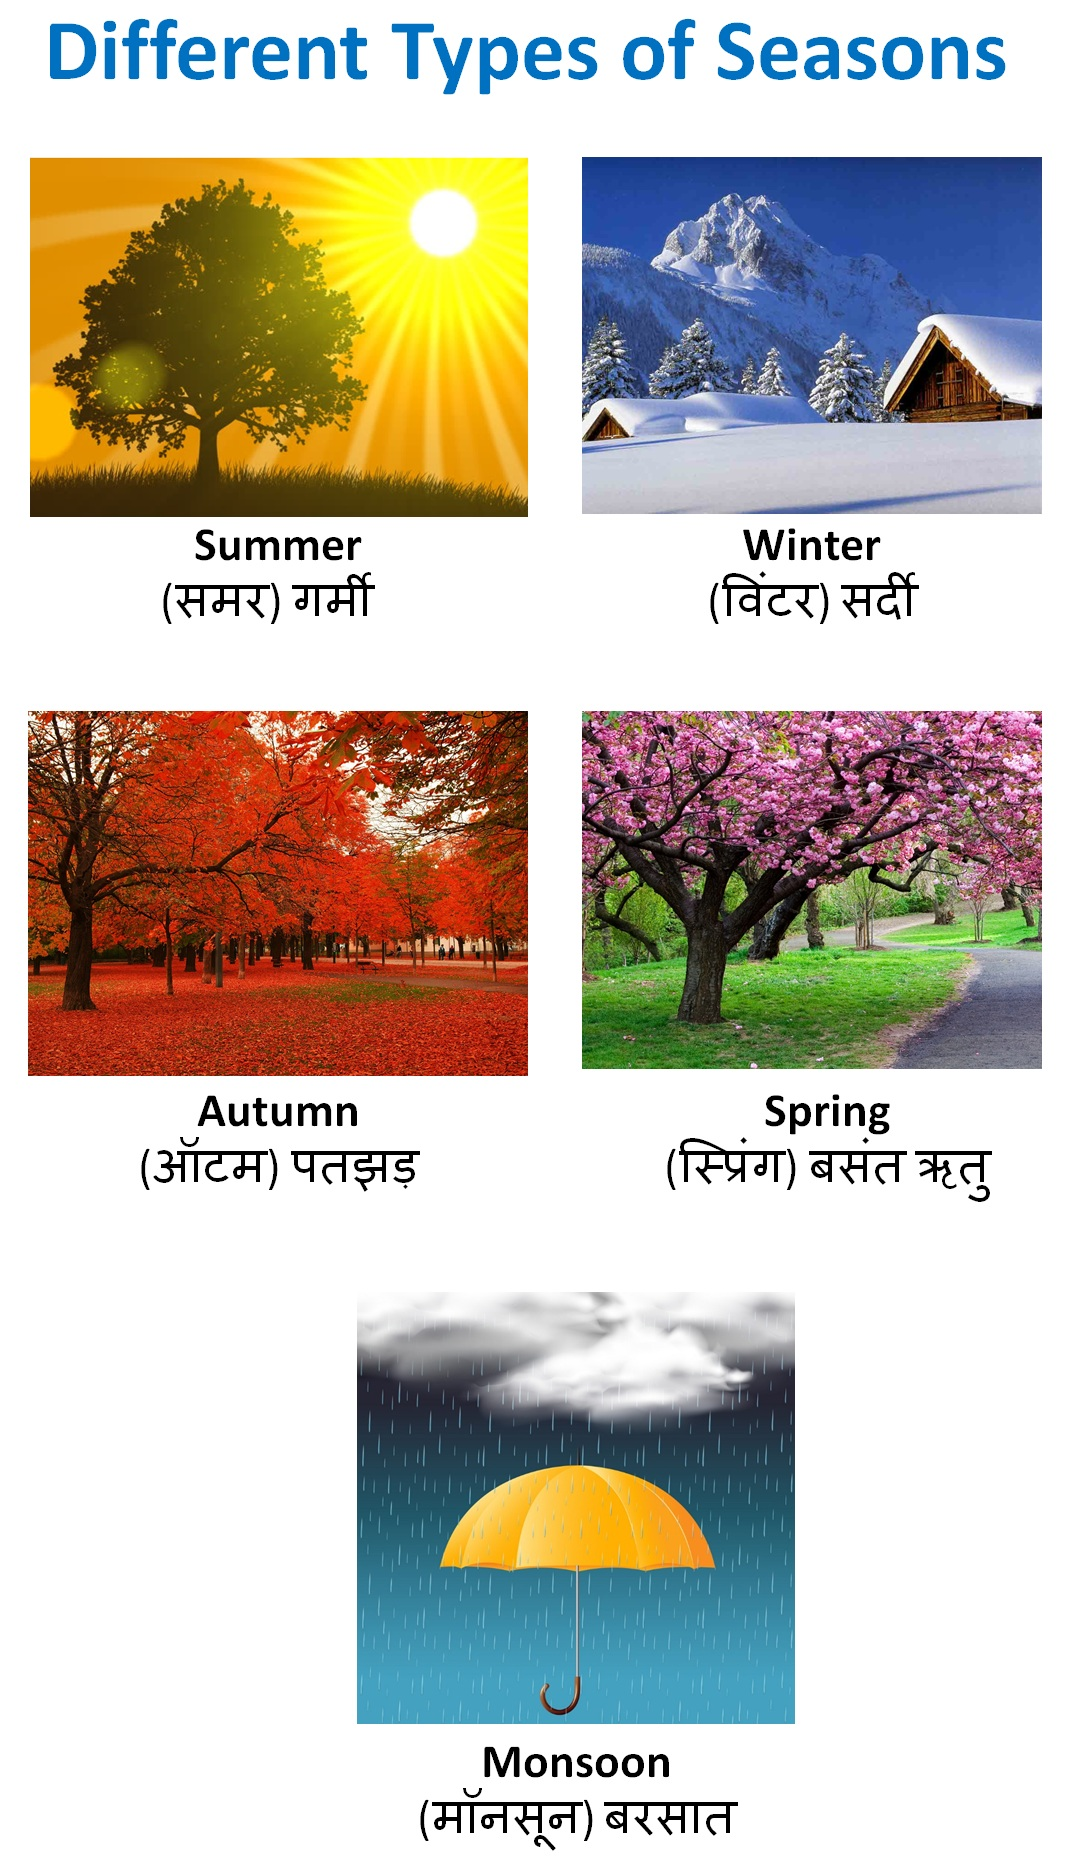 Different Types of Seasons.jpg